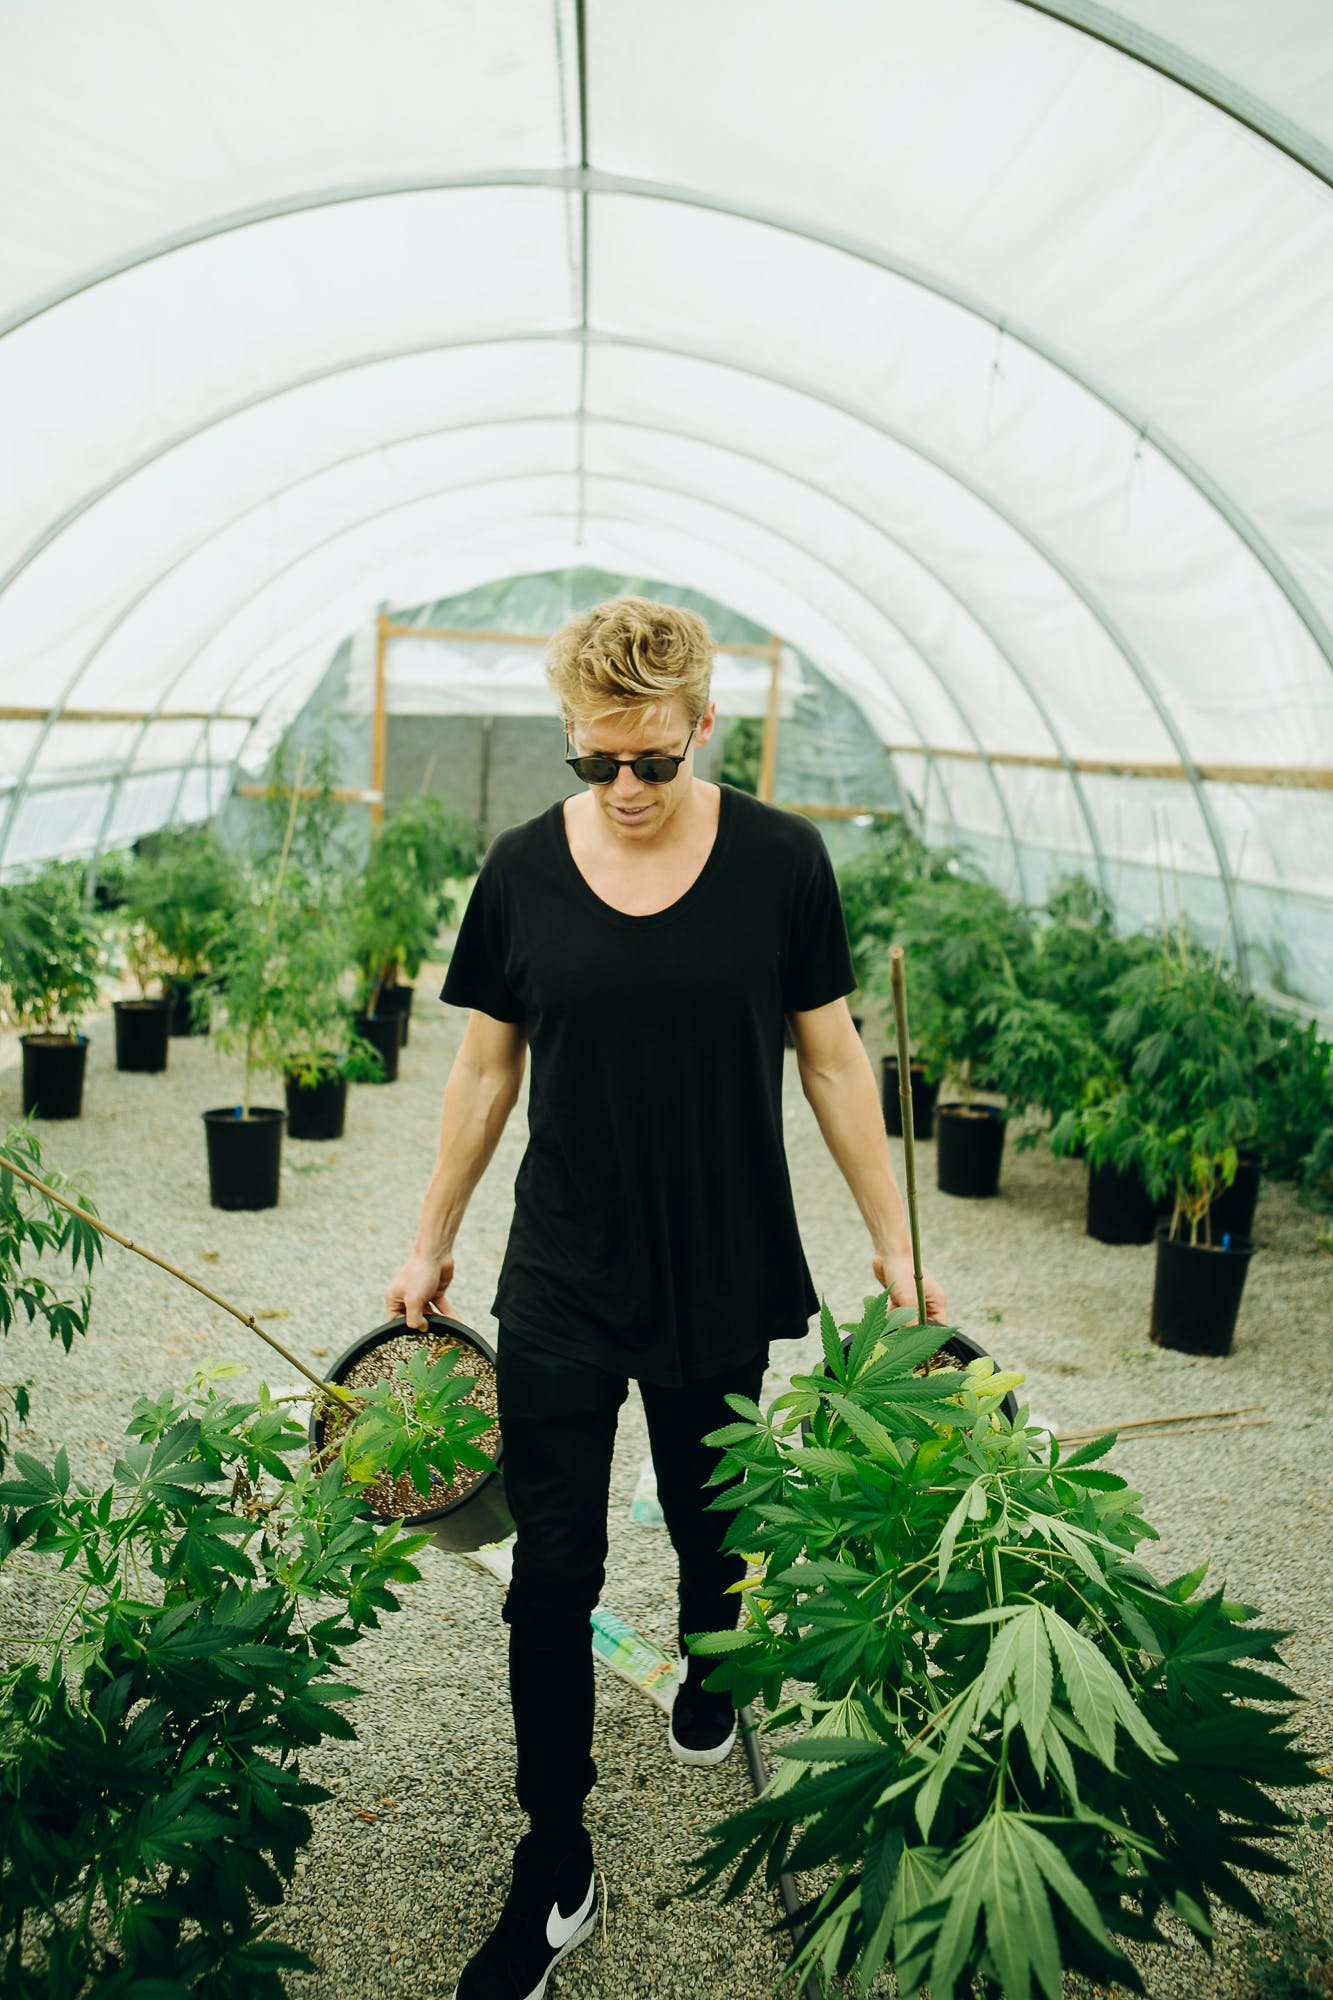 From Death%E2%80%99s Door To Thriving Business Here%E2%80%99s How Mills Miller Saved His Own Life With CBD Oil 12 This Is How California Is Destroying $350 Million Worth Of Weed